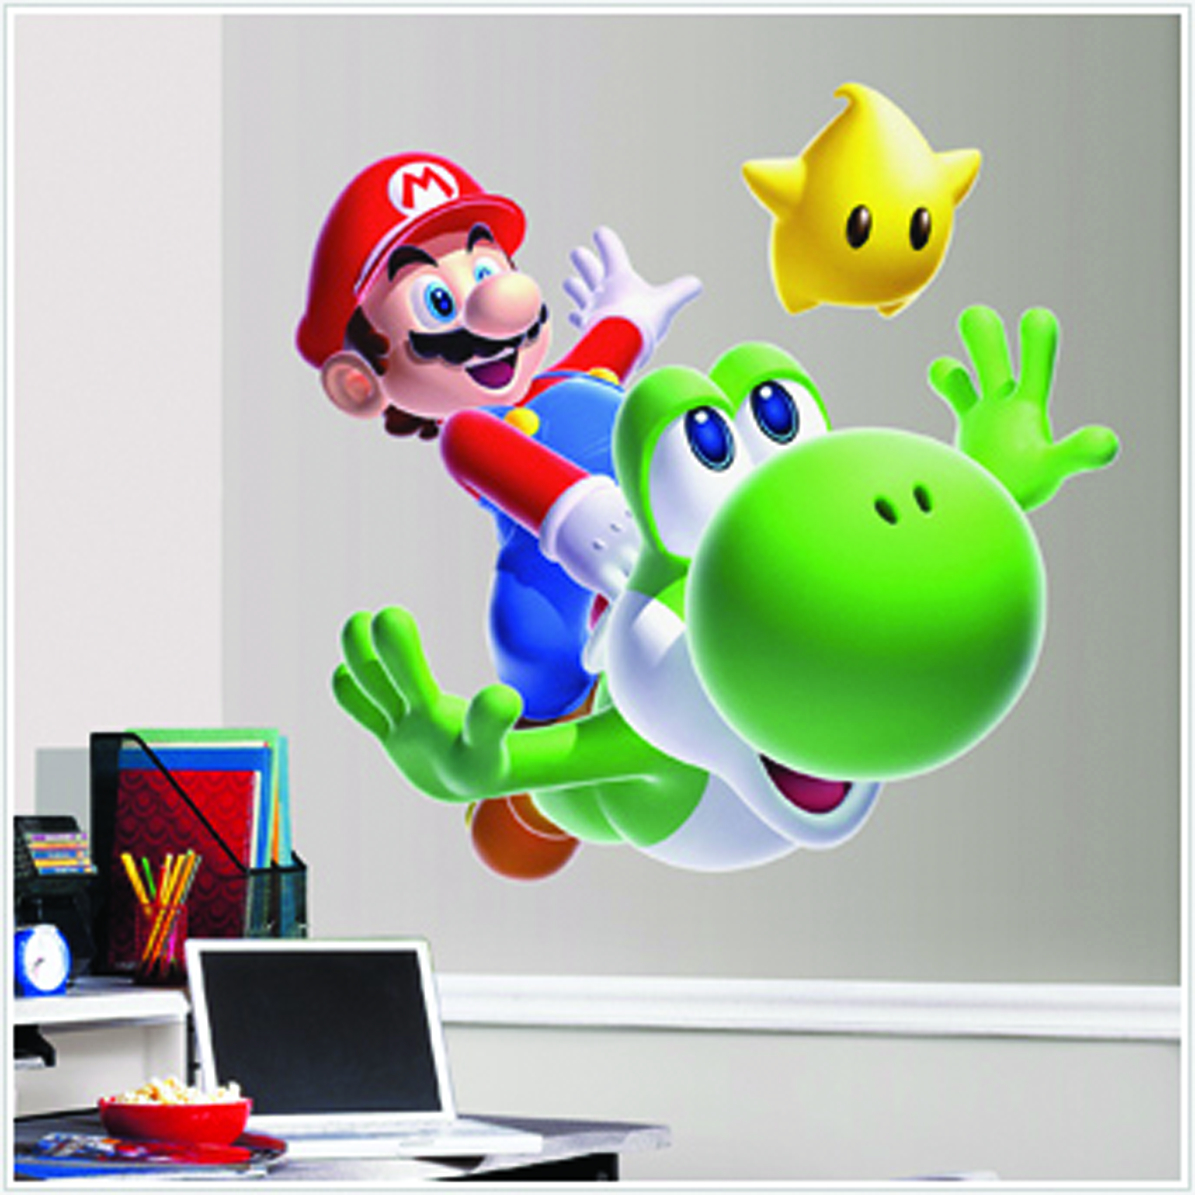 SUPER MARIO BROS. MARIO YOSHI GIANT WALL DECAL